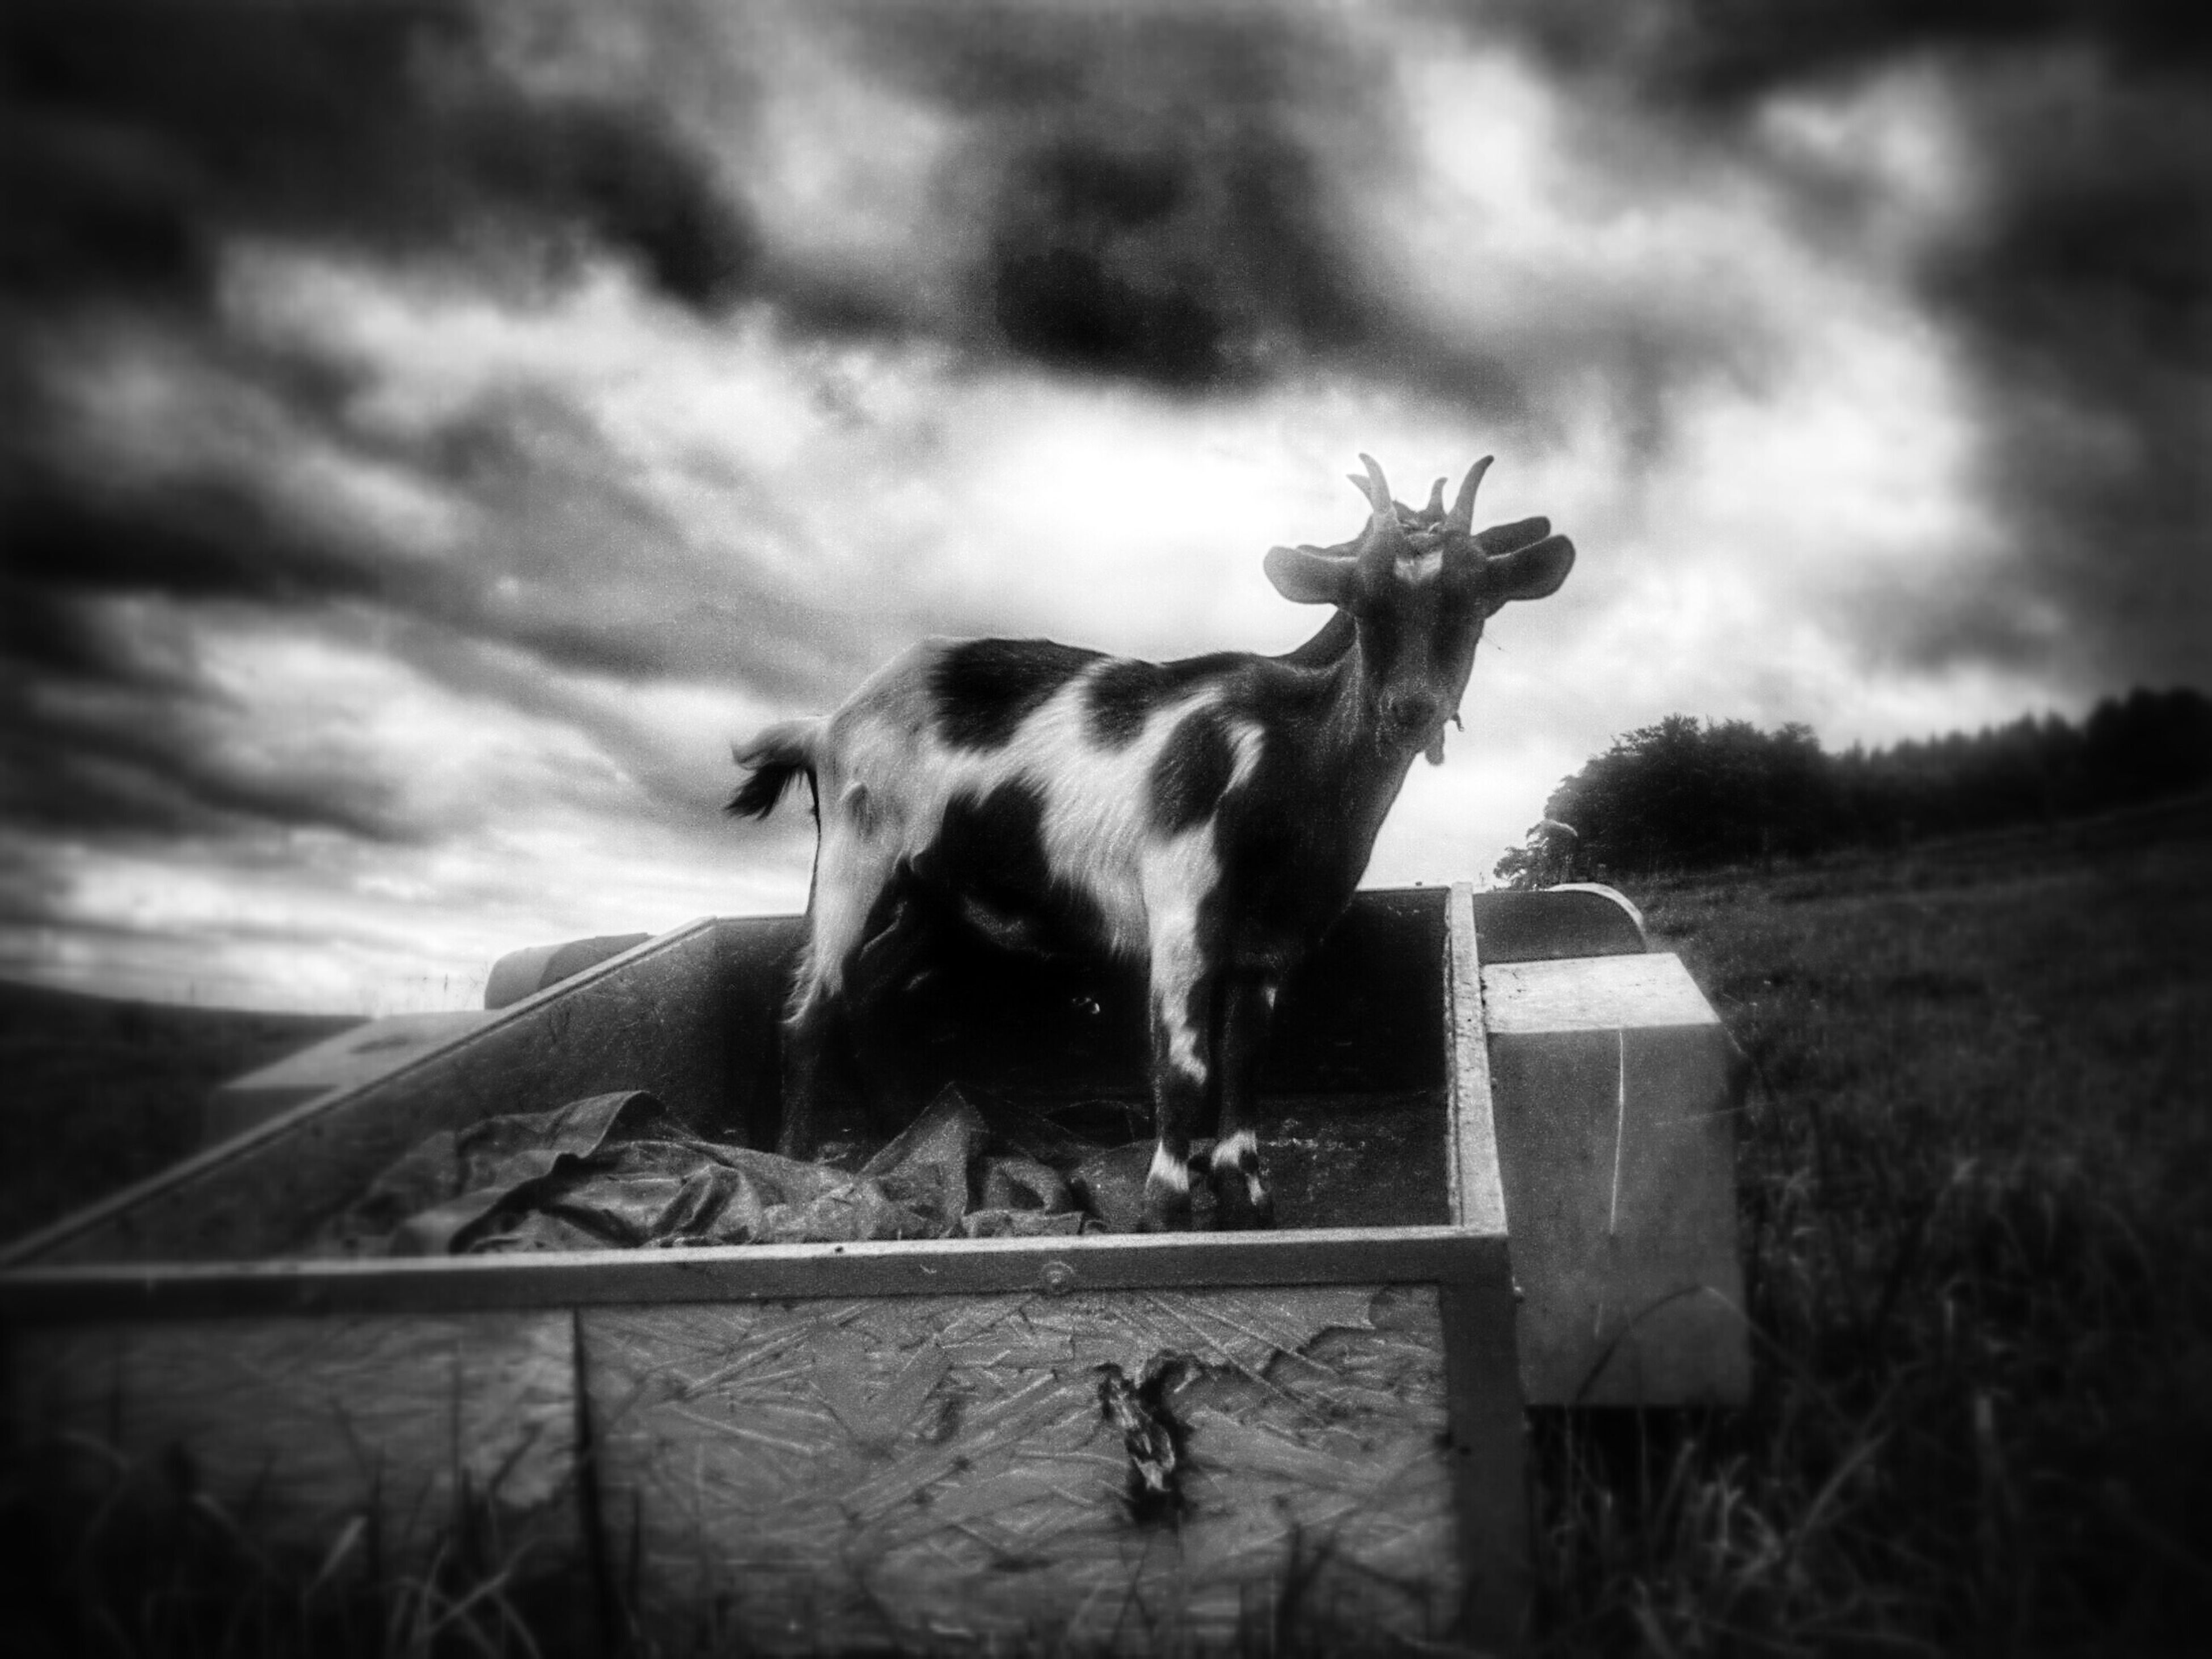 animal themes, one animal, sky, mammal, domestic animals, field, cloud - sky, cloudy, landscape, grass, cloud, day, nature, pets, horse, no people, fence, outdoors, grassy, focus on foreground